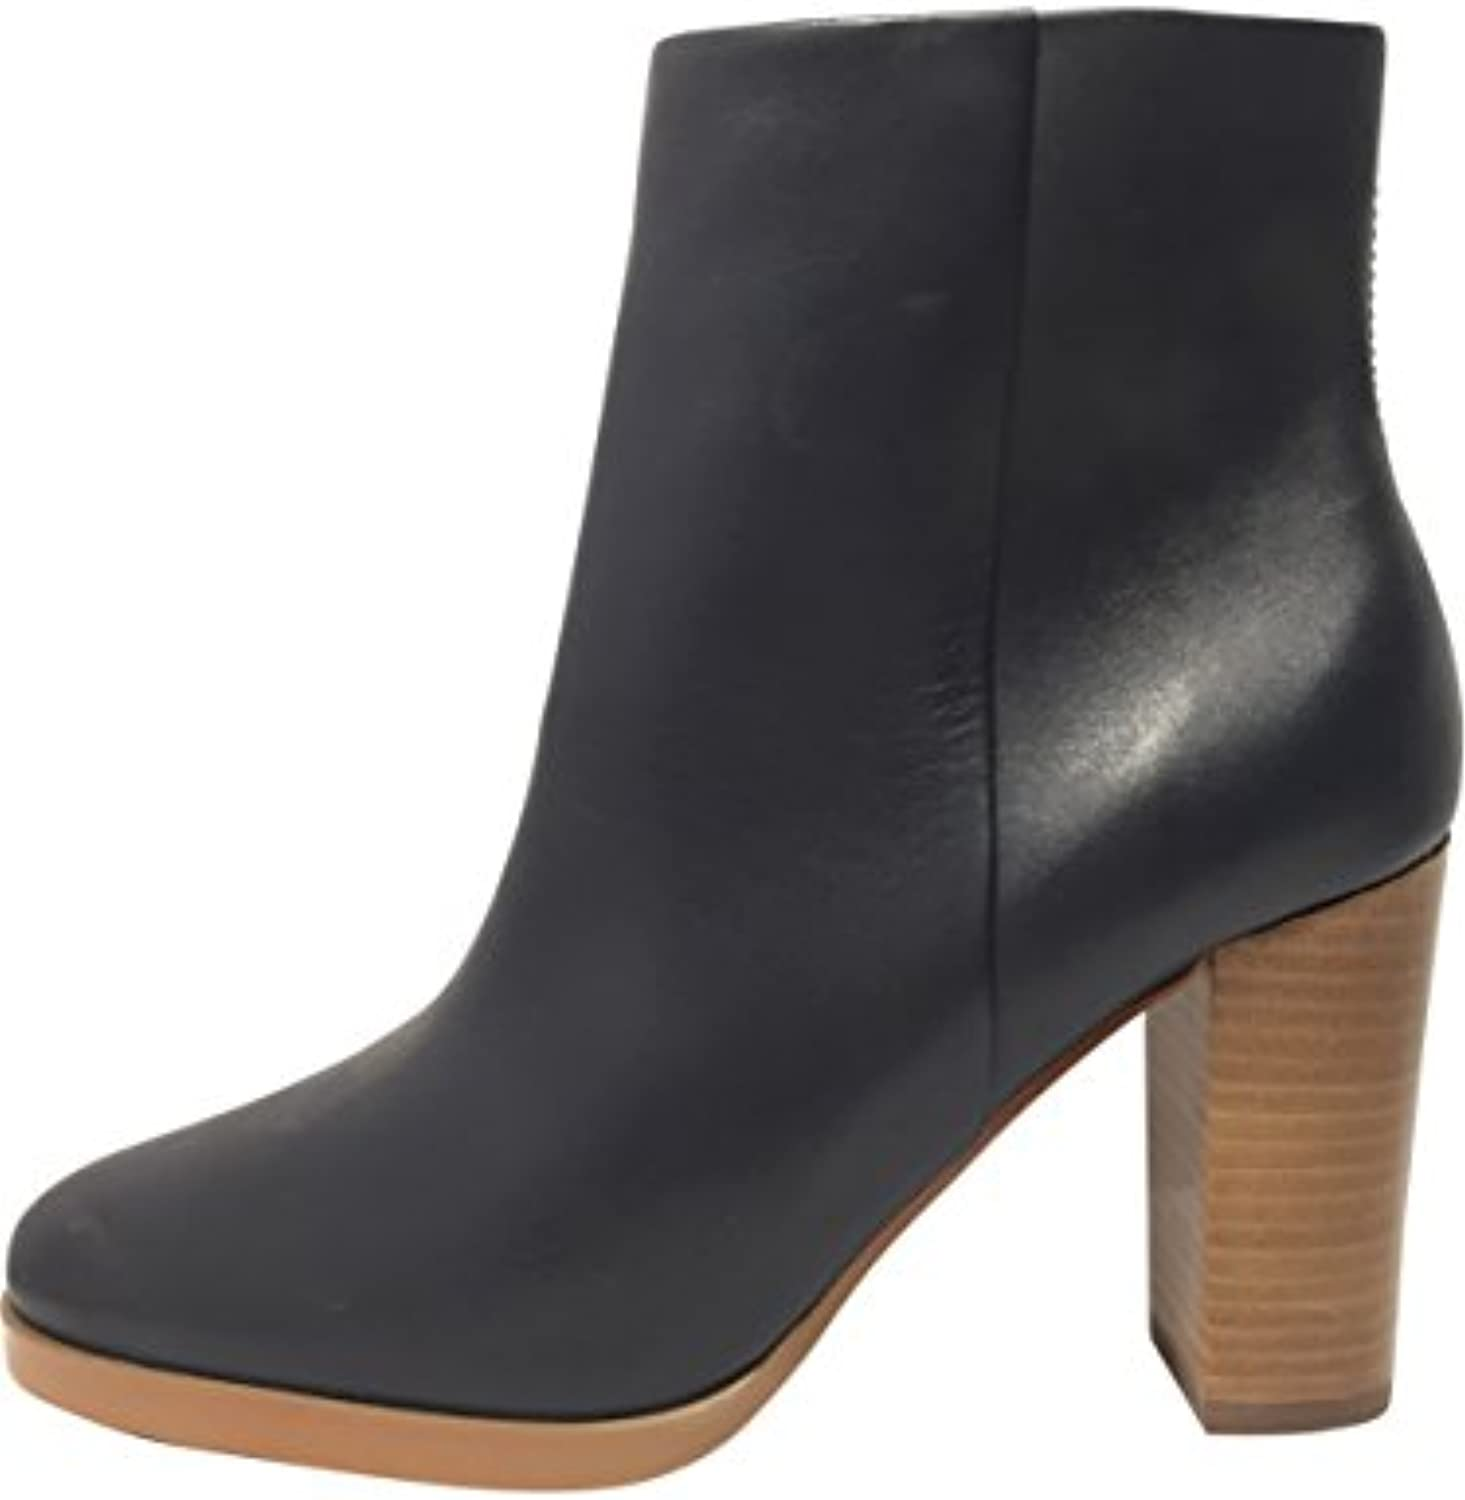 The City Outlet - Botines mujer